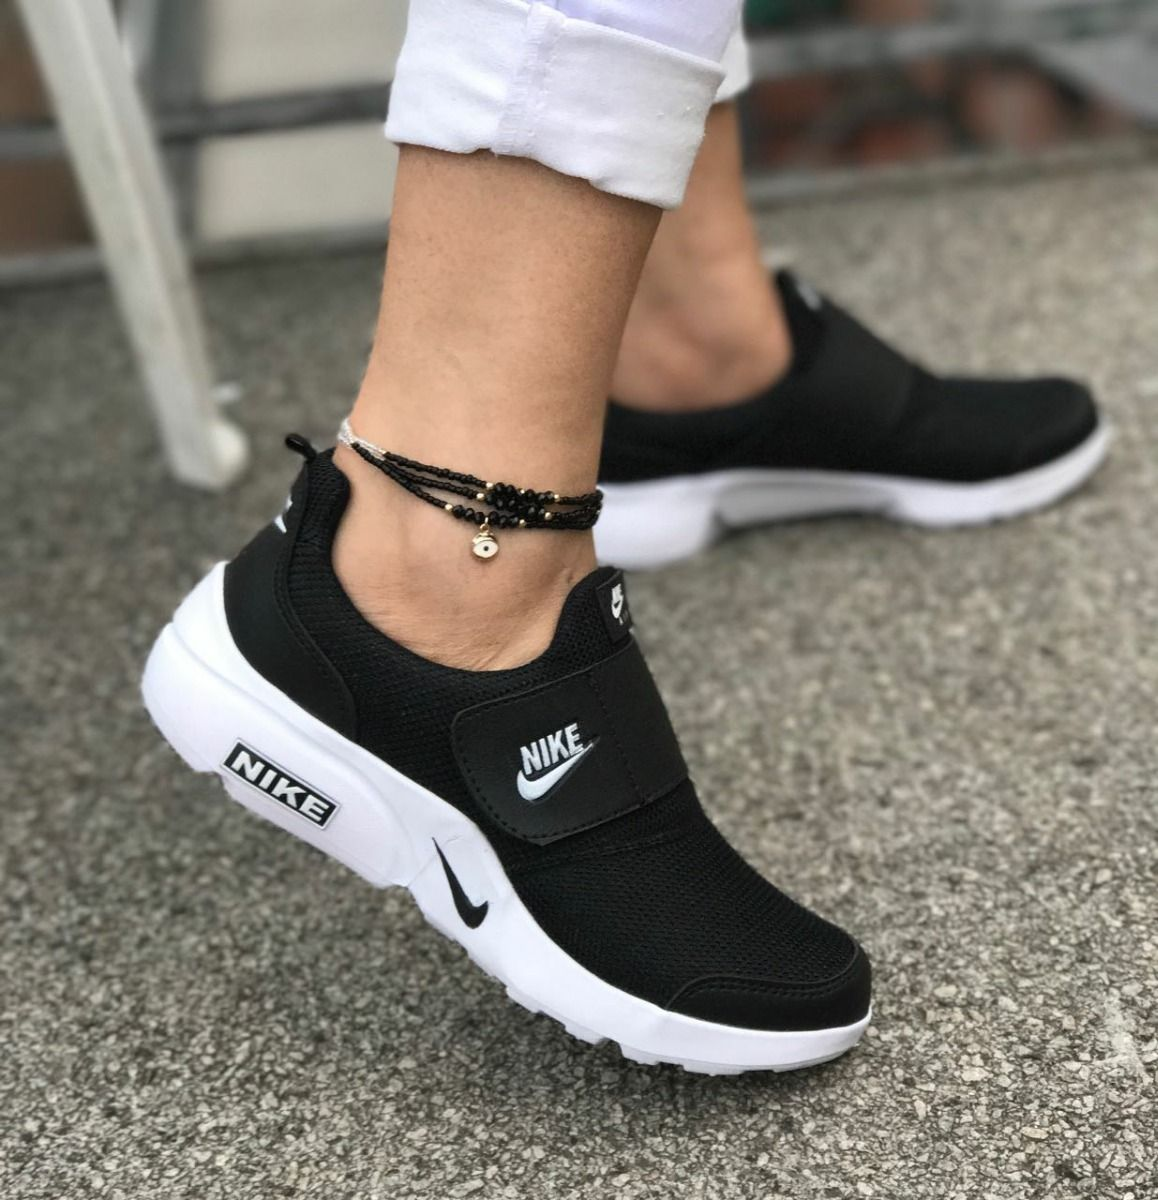 363c8699ae8 Image result for zapatos nike para mujer